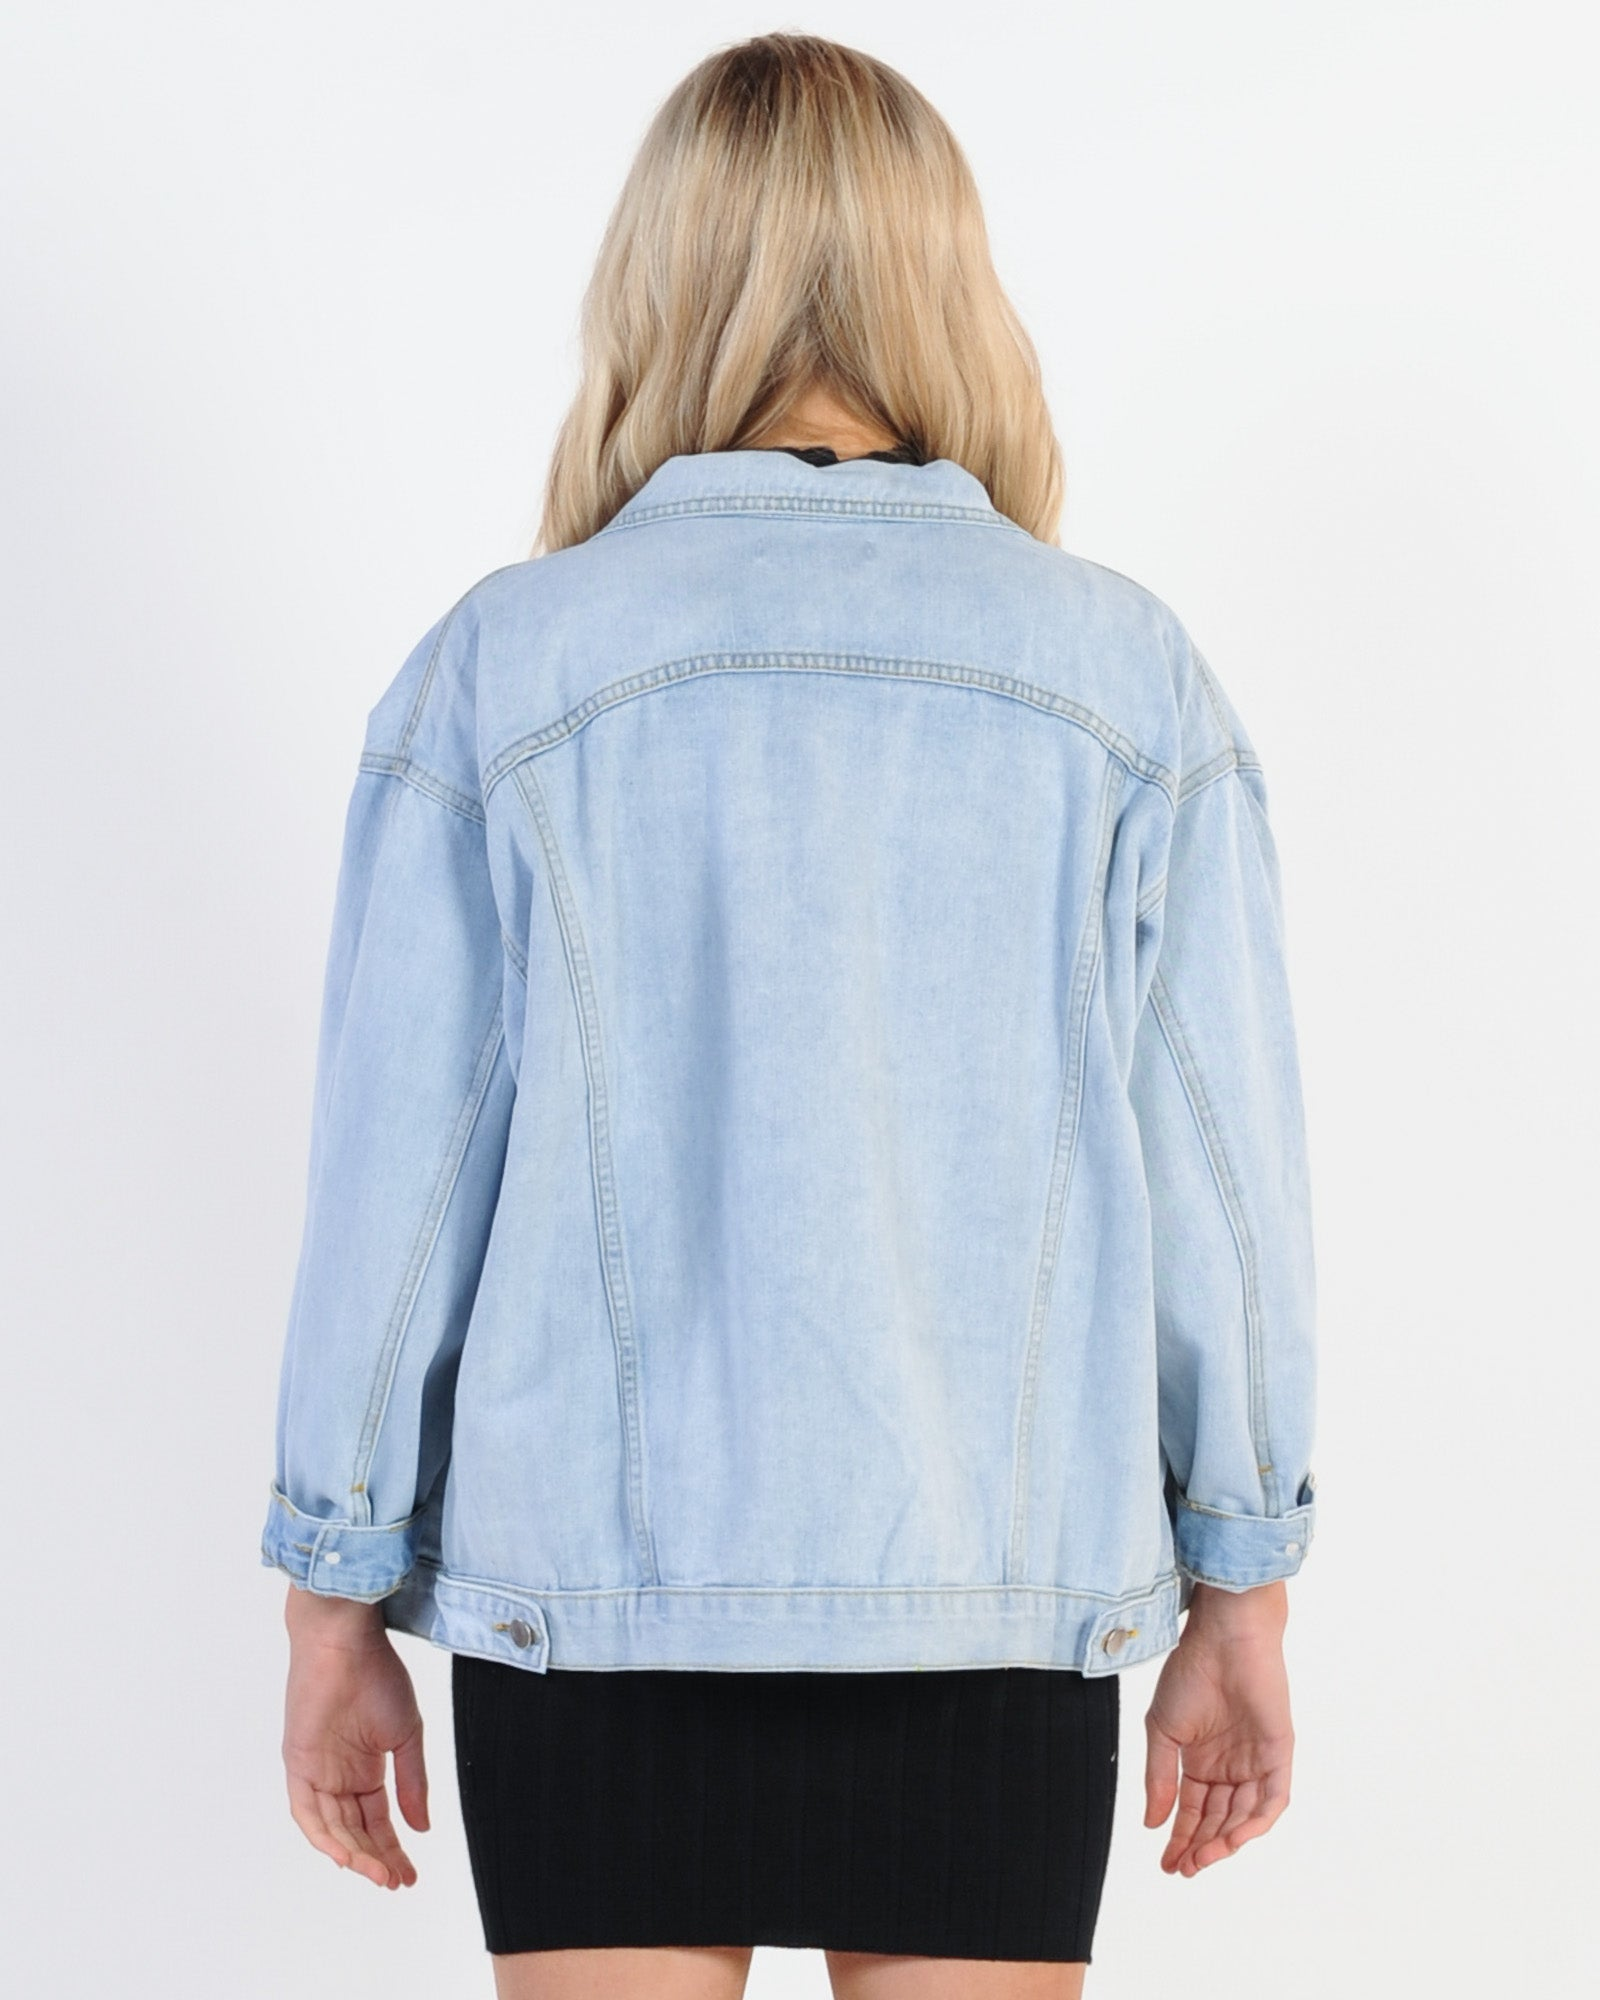 Breaking Bad Denim Jacket - Light Blue